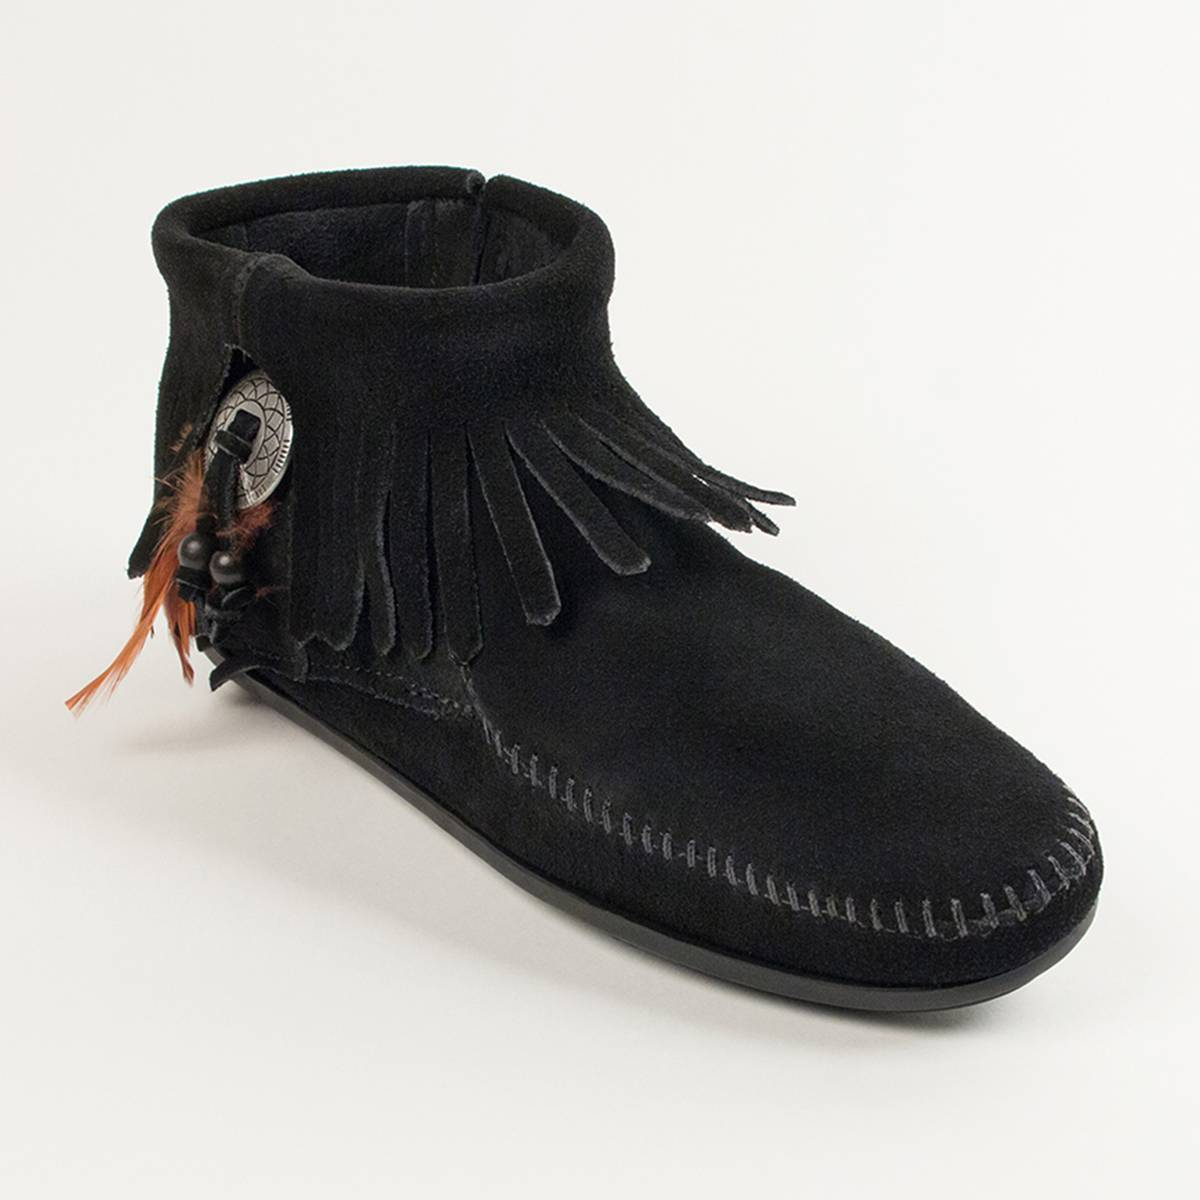 MINNETONKA Botines CONCHO FEATHER negro